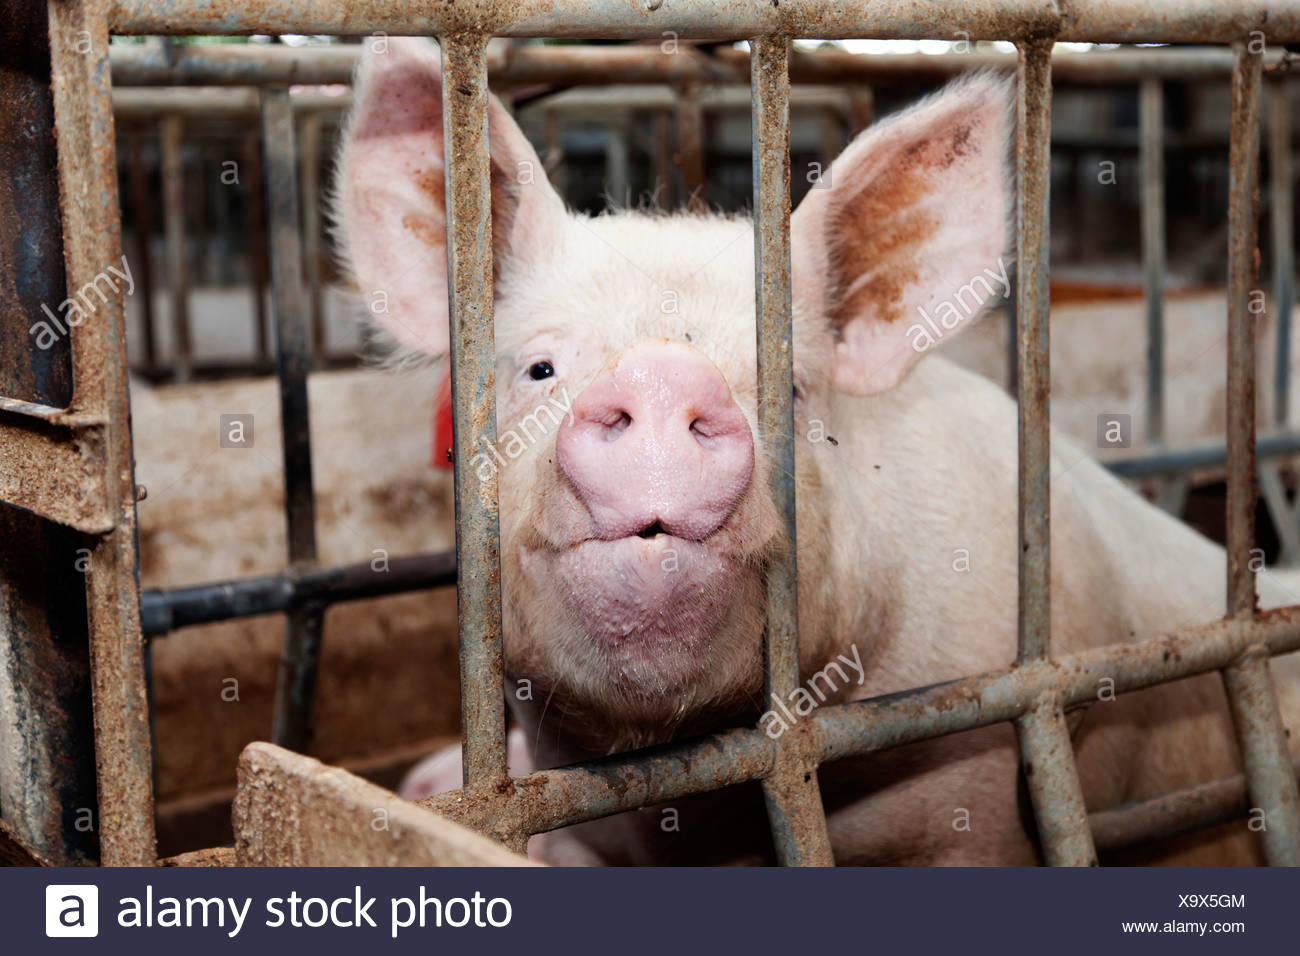 Piglet sitting in a cage, looking at camera - Stock Image